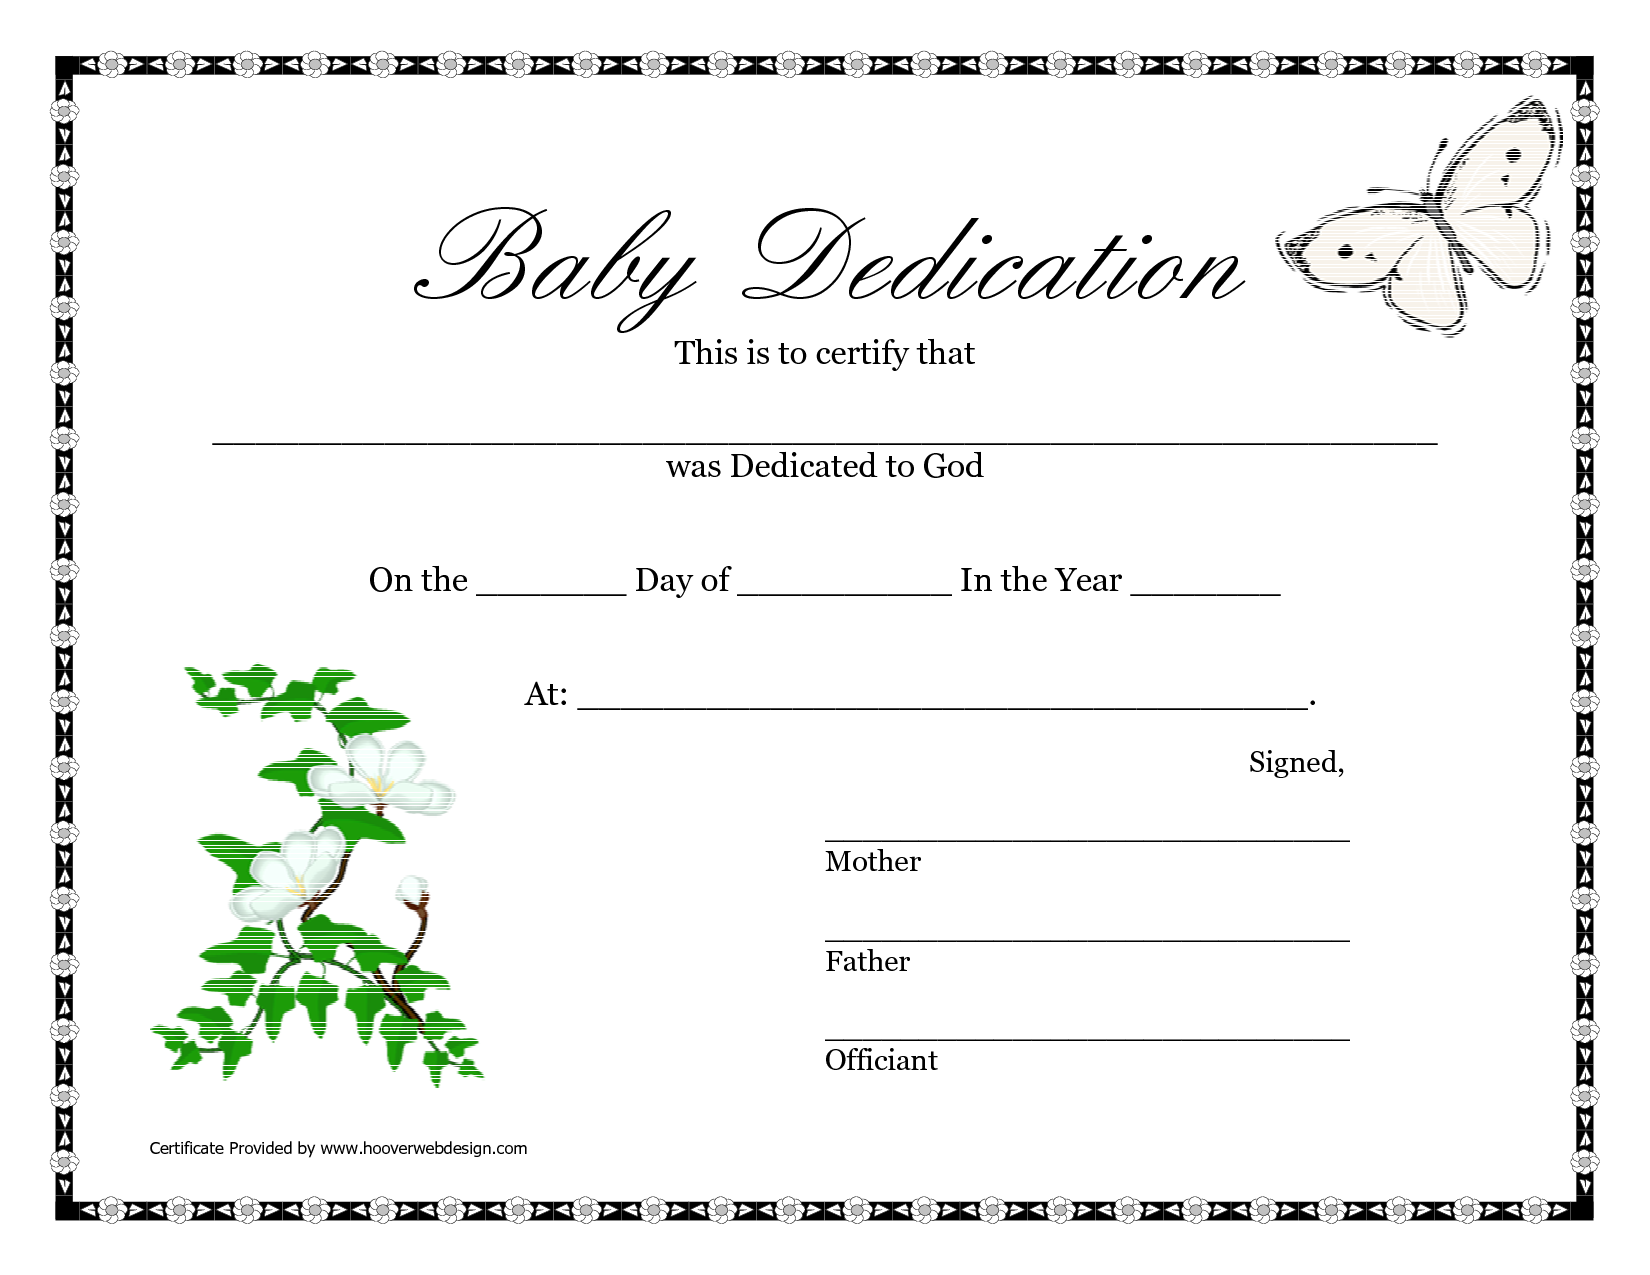 Printable Baby Dedication Certificate | church certificates ...